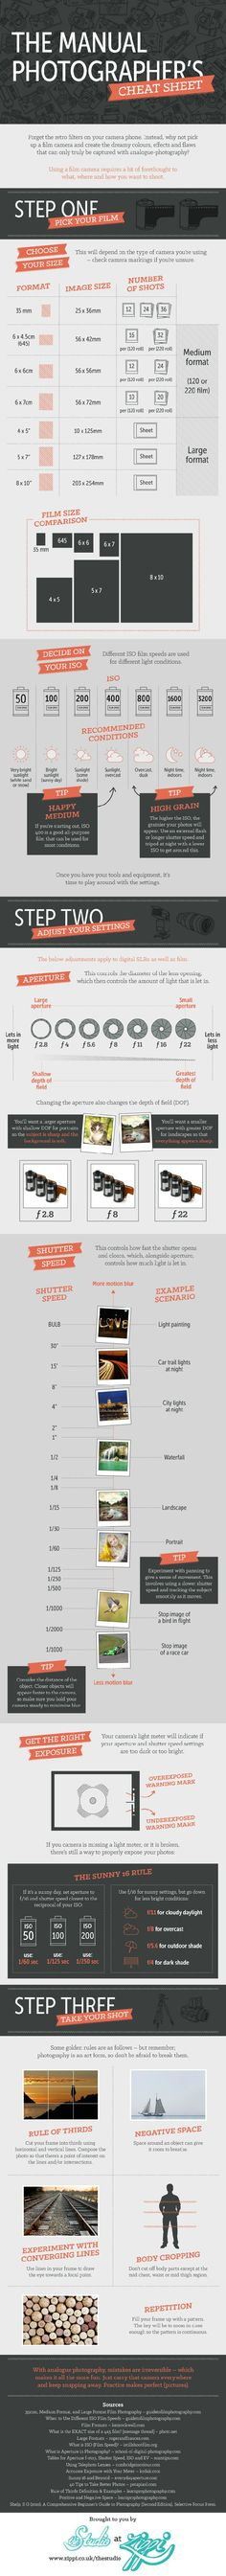 The Manual Photography Cheat Sheet - Imgur @JEANNiEMiLES